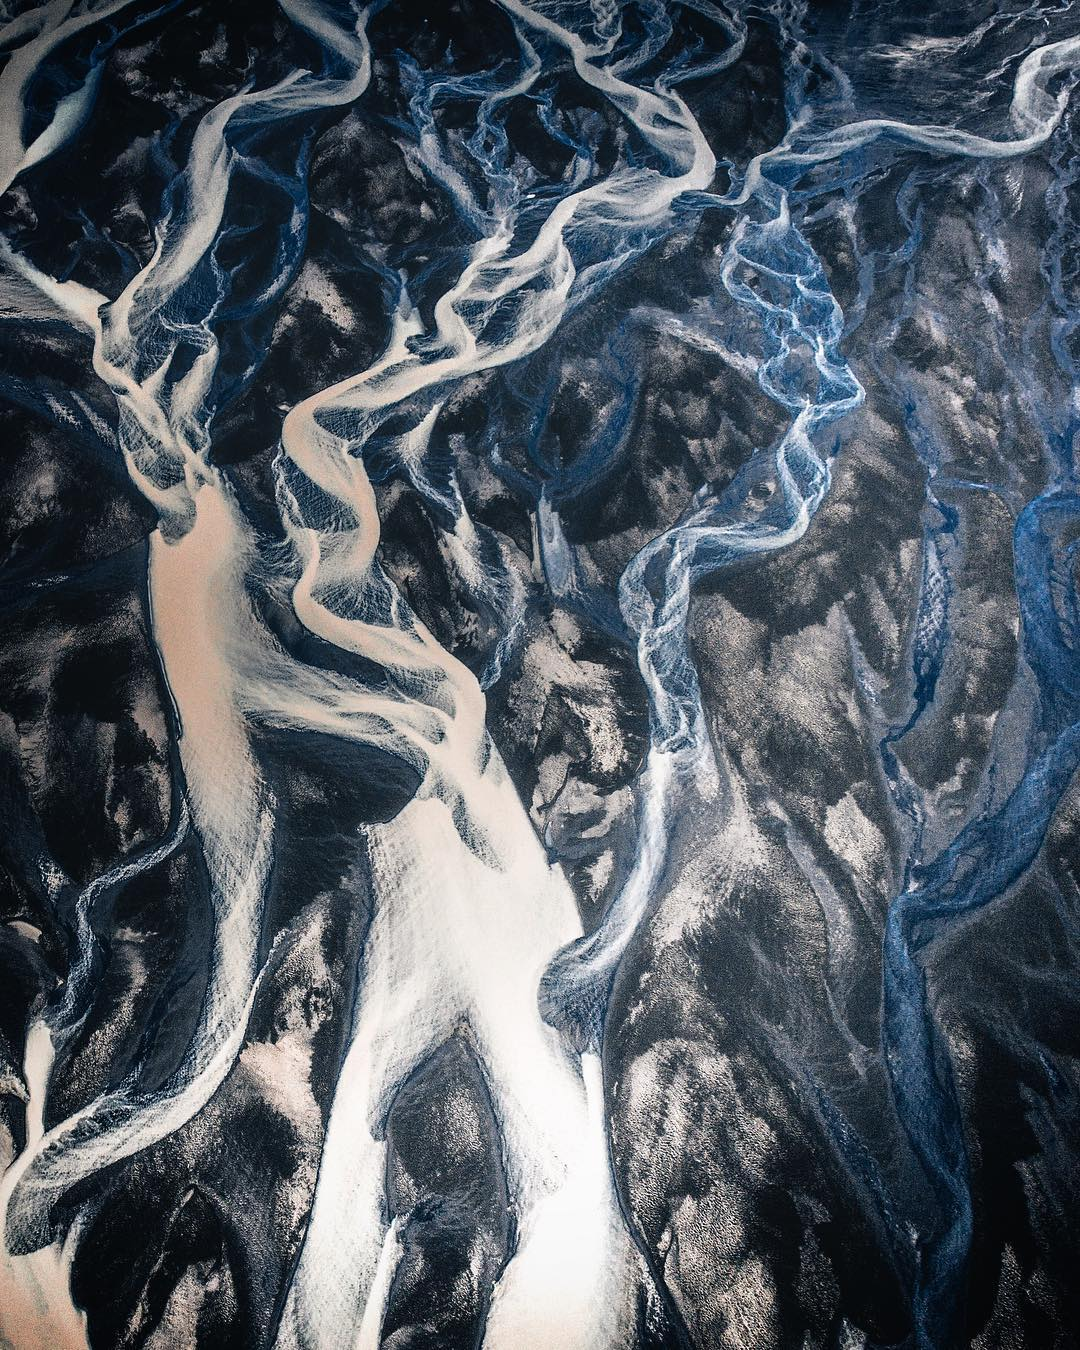 Glacial rivers, Iceland.